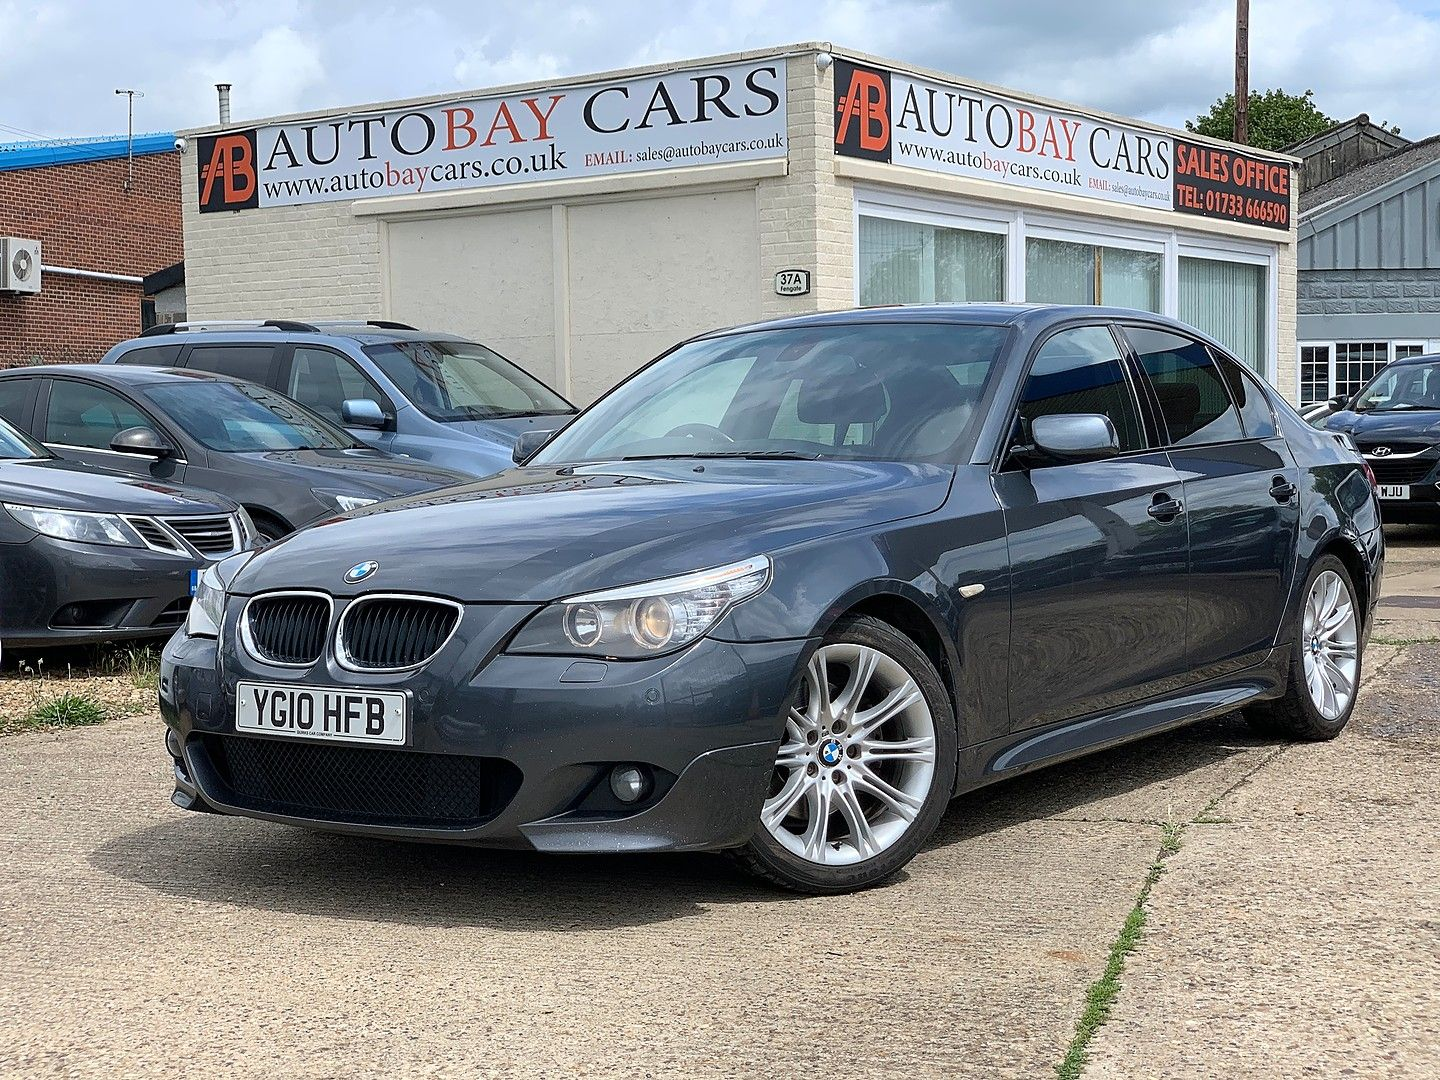 Bmw 5 Series 520d M Sport 2010 For Sale In Peterborough Cambridgeshire Autobay Cars Autobay Cars